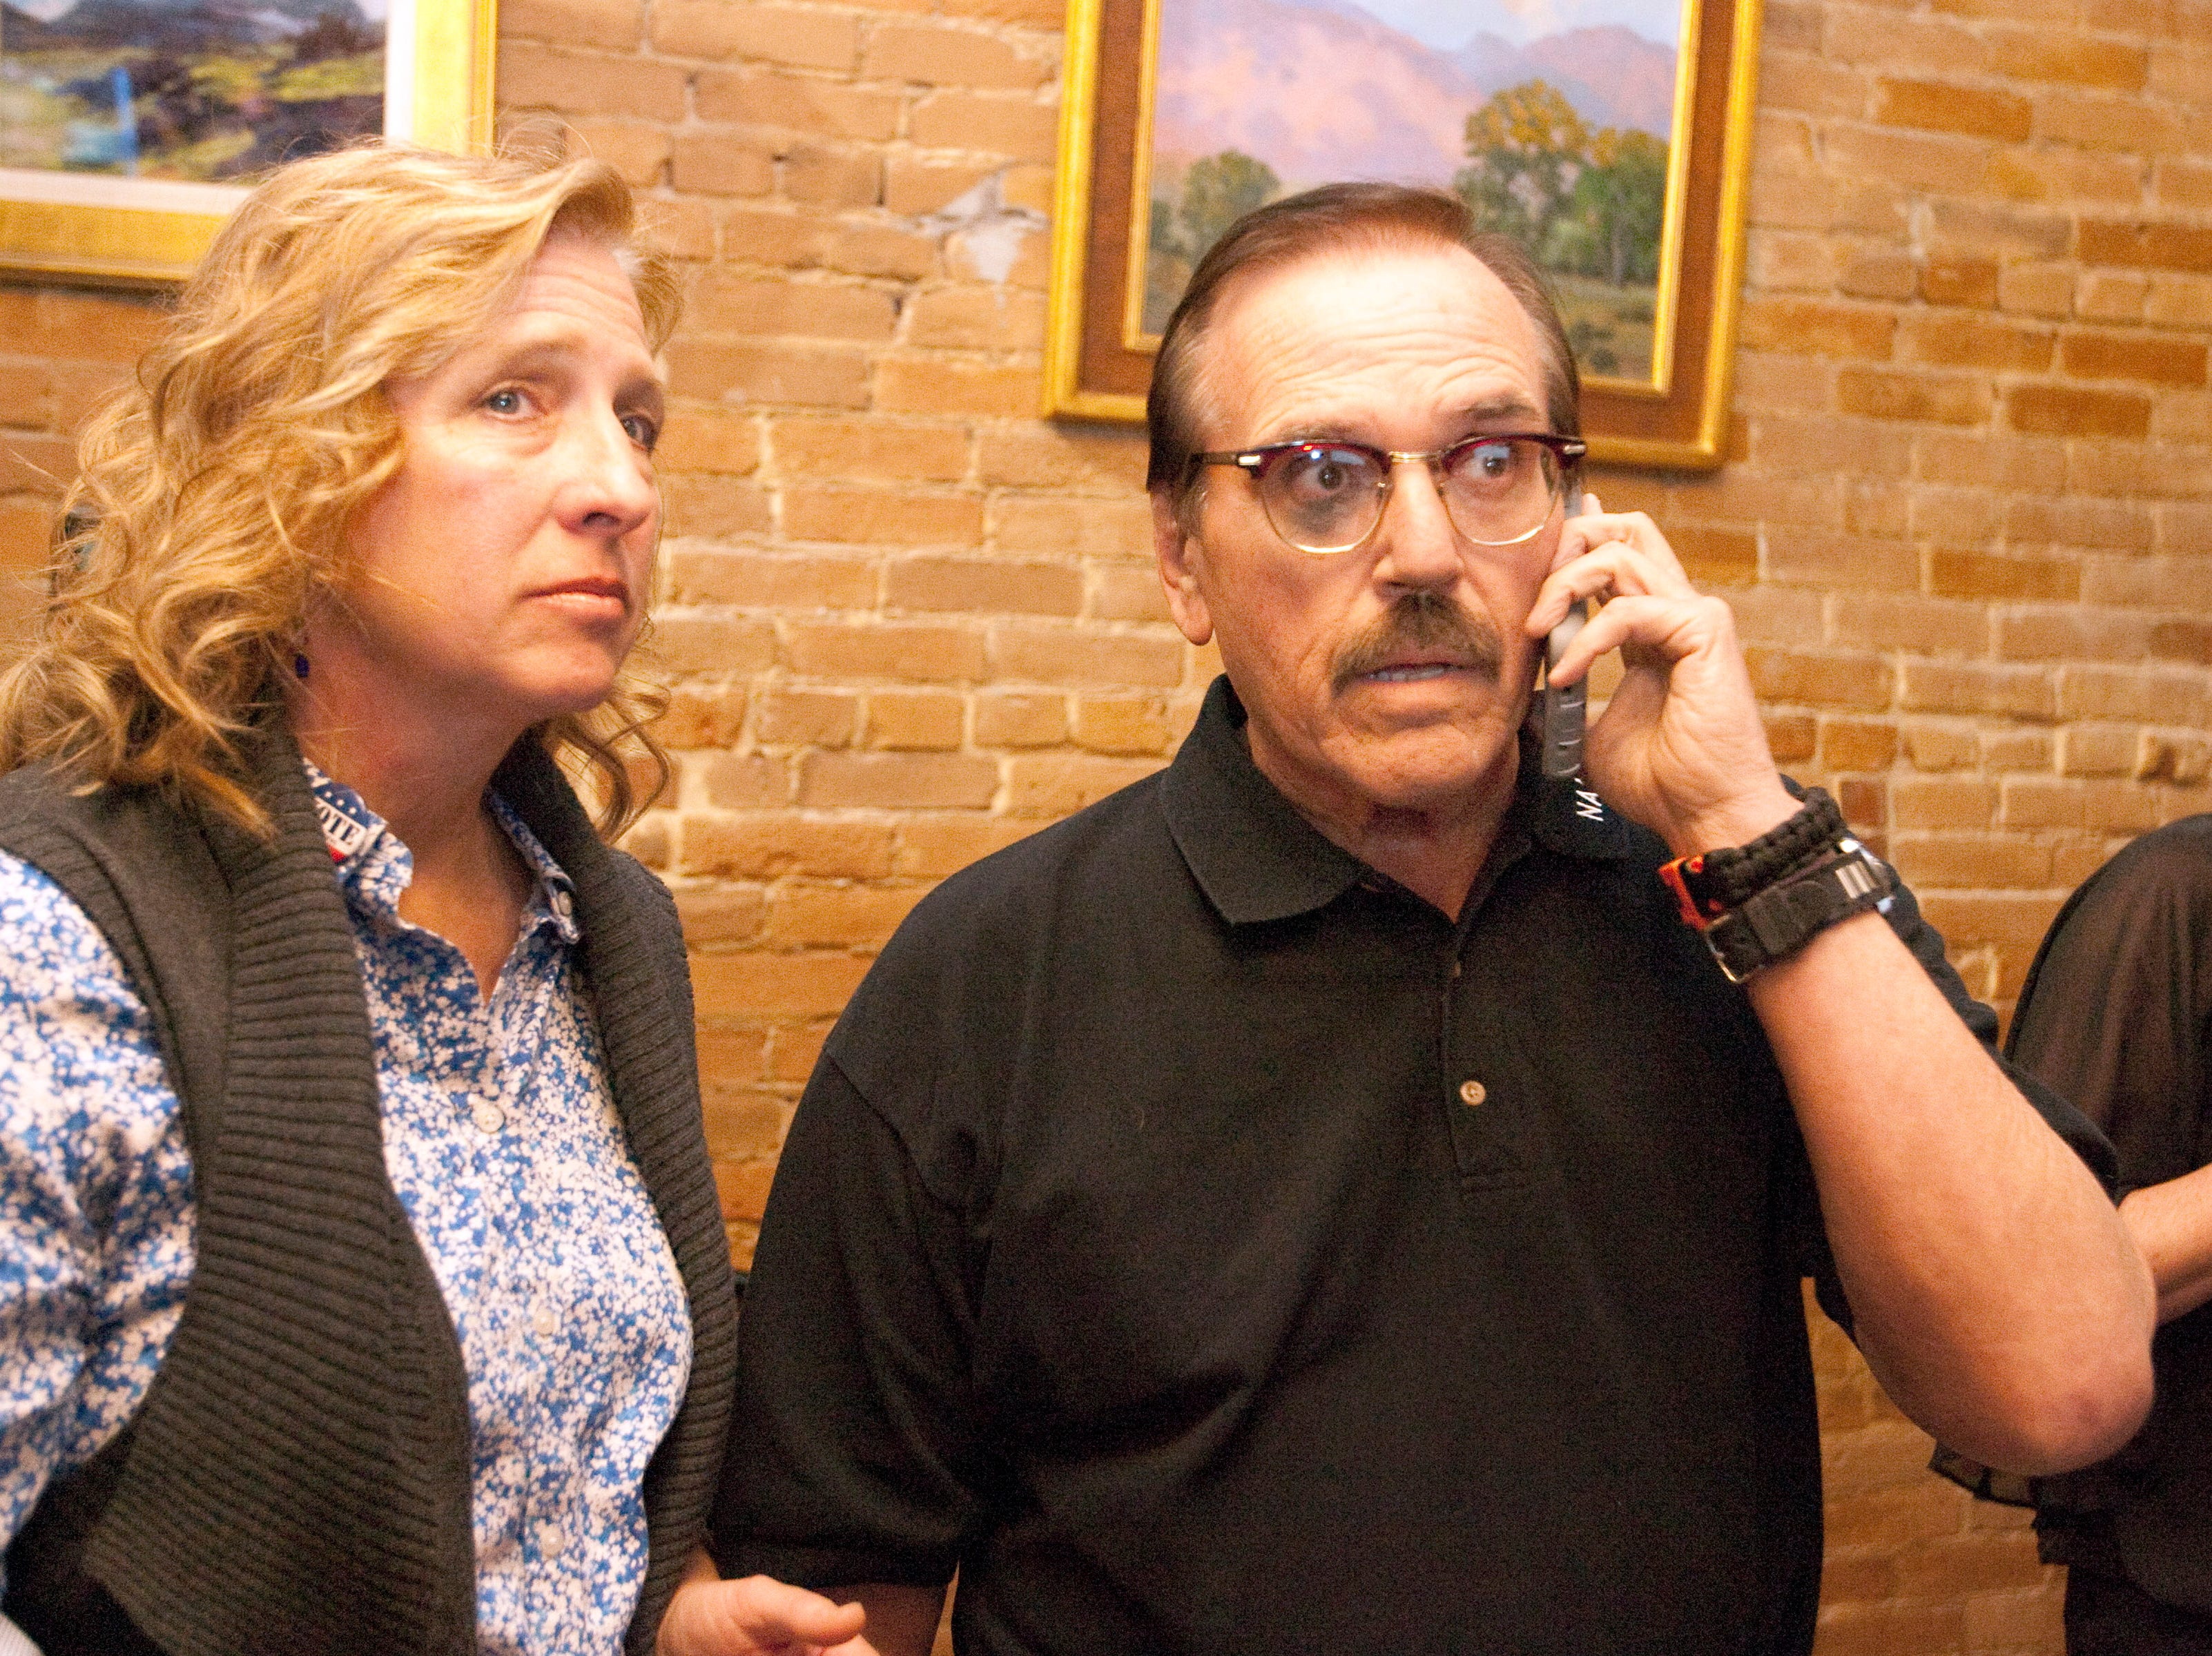 Gil Barela, campaign manager for ballot issue 1A, waits on the phone hoping to get early results for the Larimer County ballot issue 1A, while Jody Shadduck­McNally, campaign treasurer, looks on during a watch party held at the Loveland TapHouse Tuesday evening.